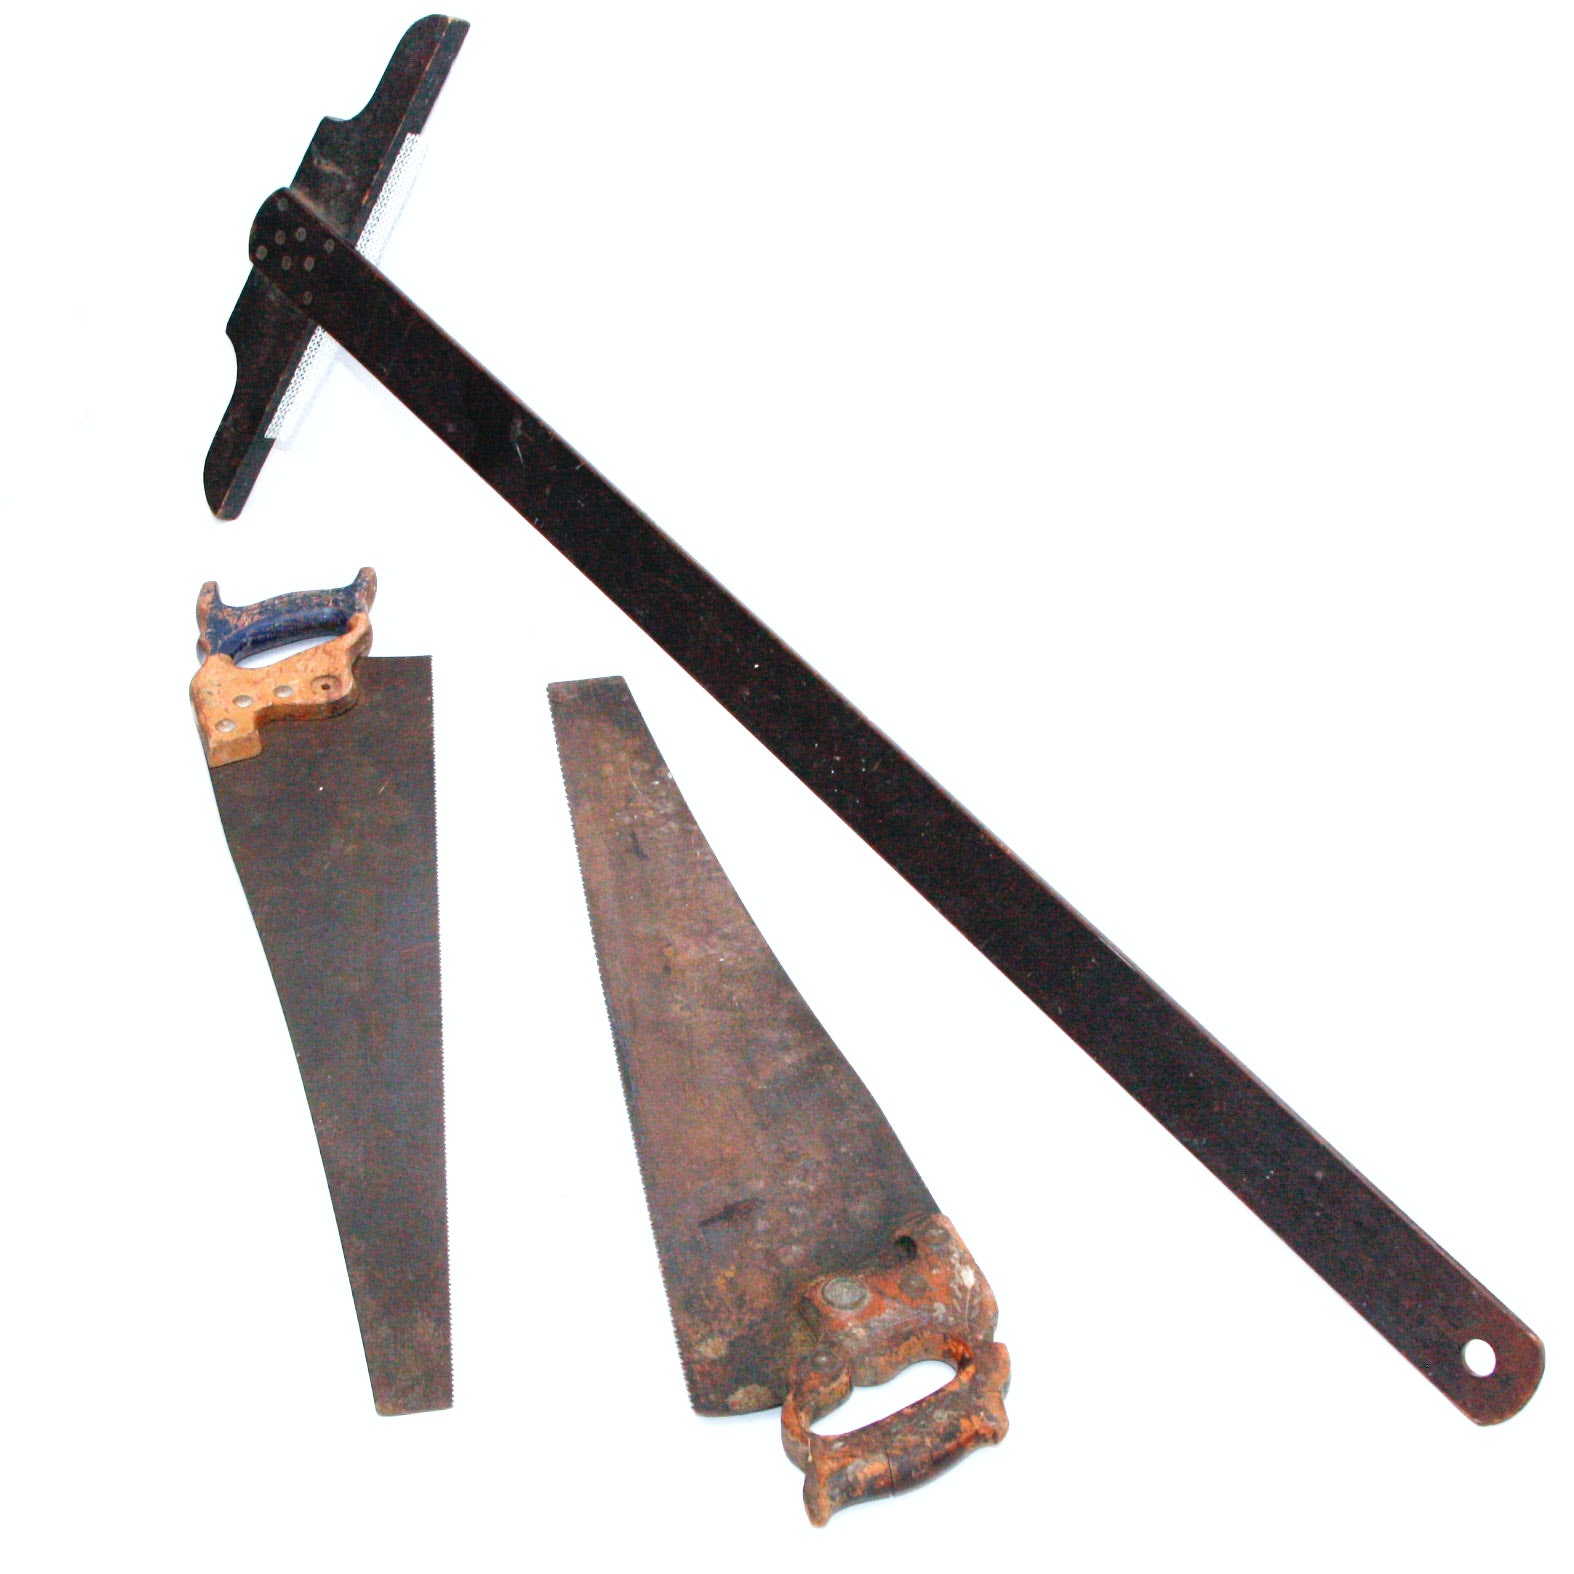 Pair of Antique Hand Saws and T-Measure